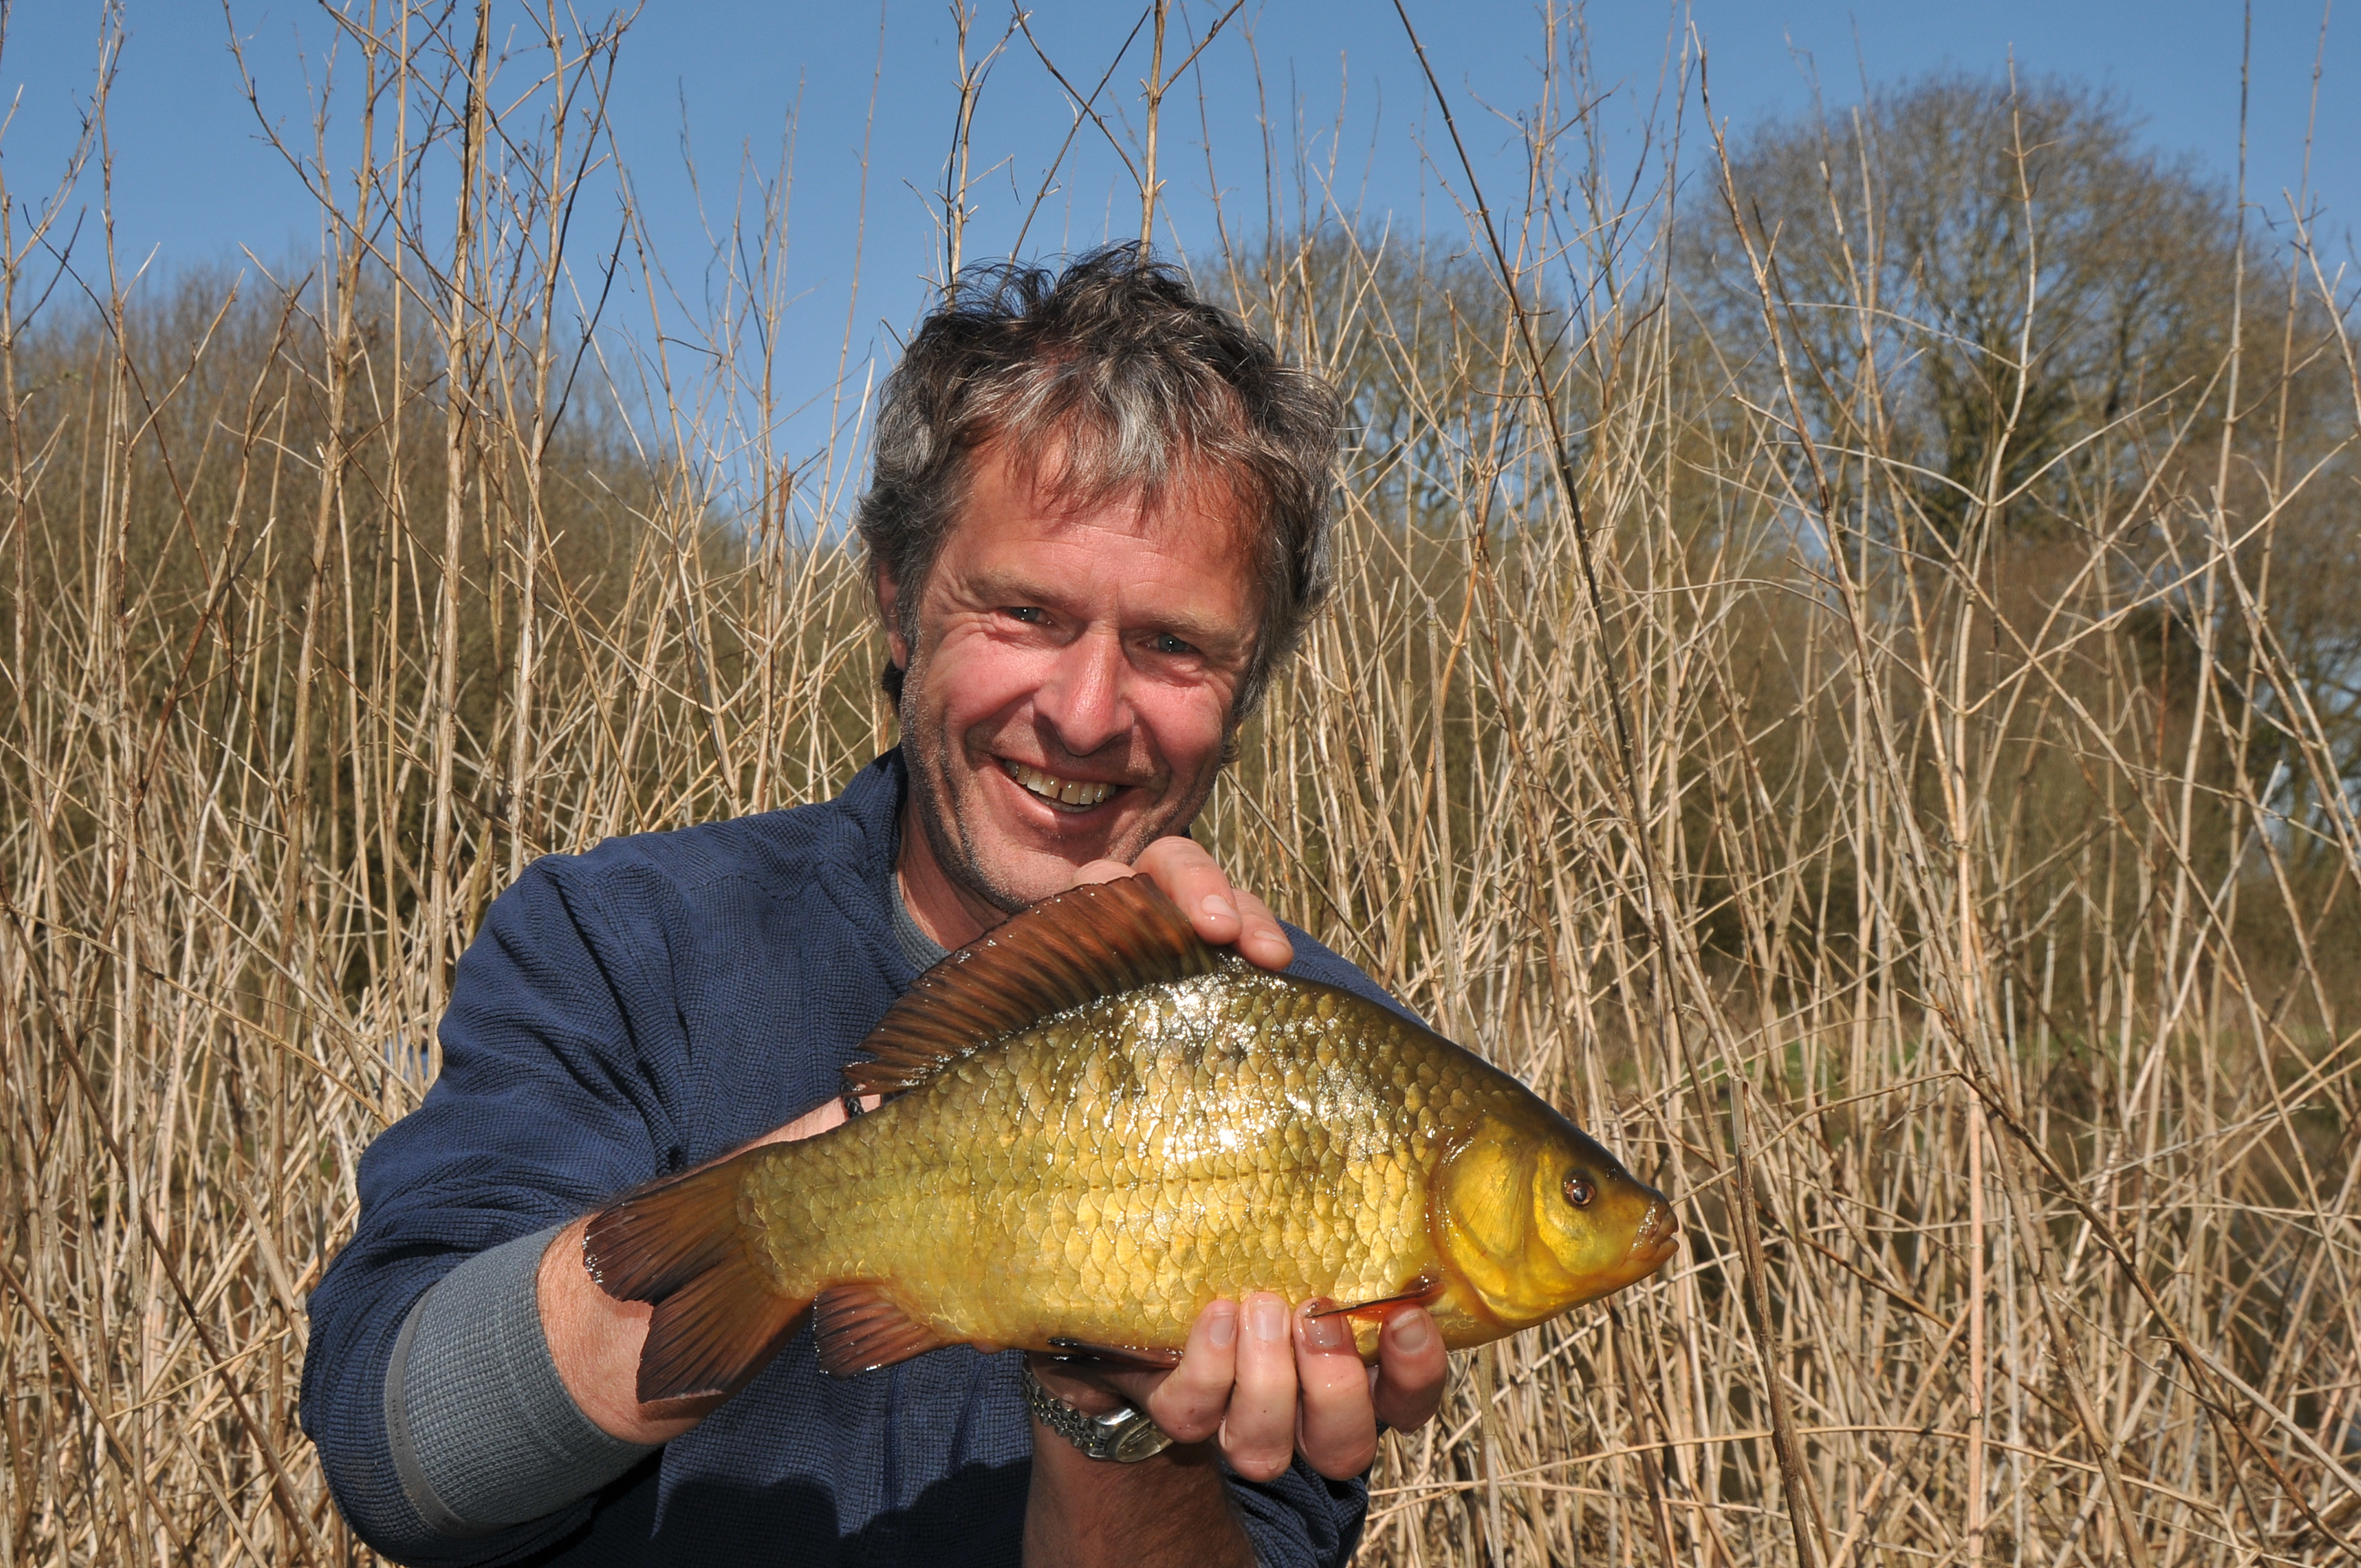 How to catch a crucian carp on a float rod - advice from anglers 78